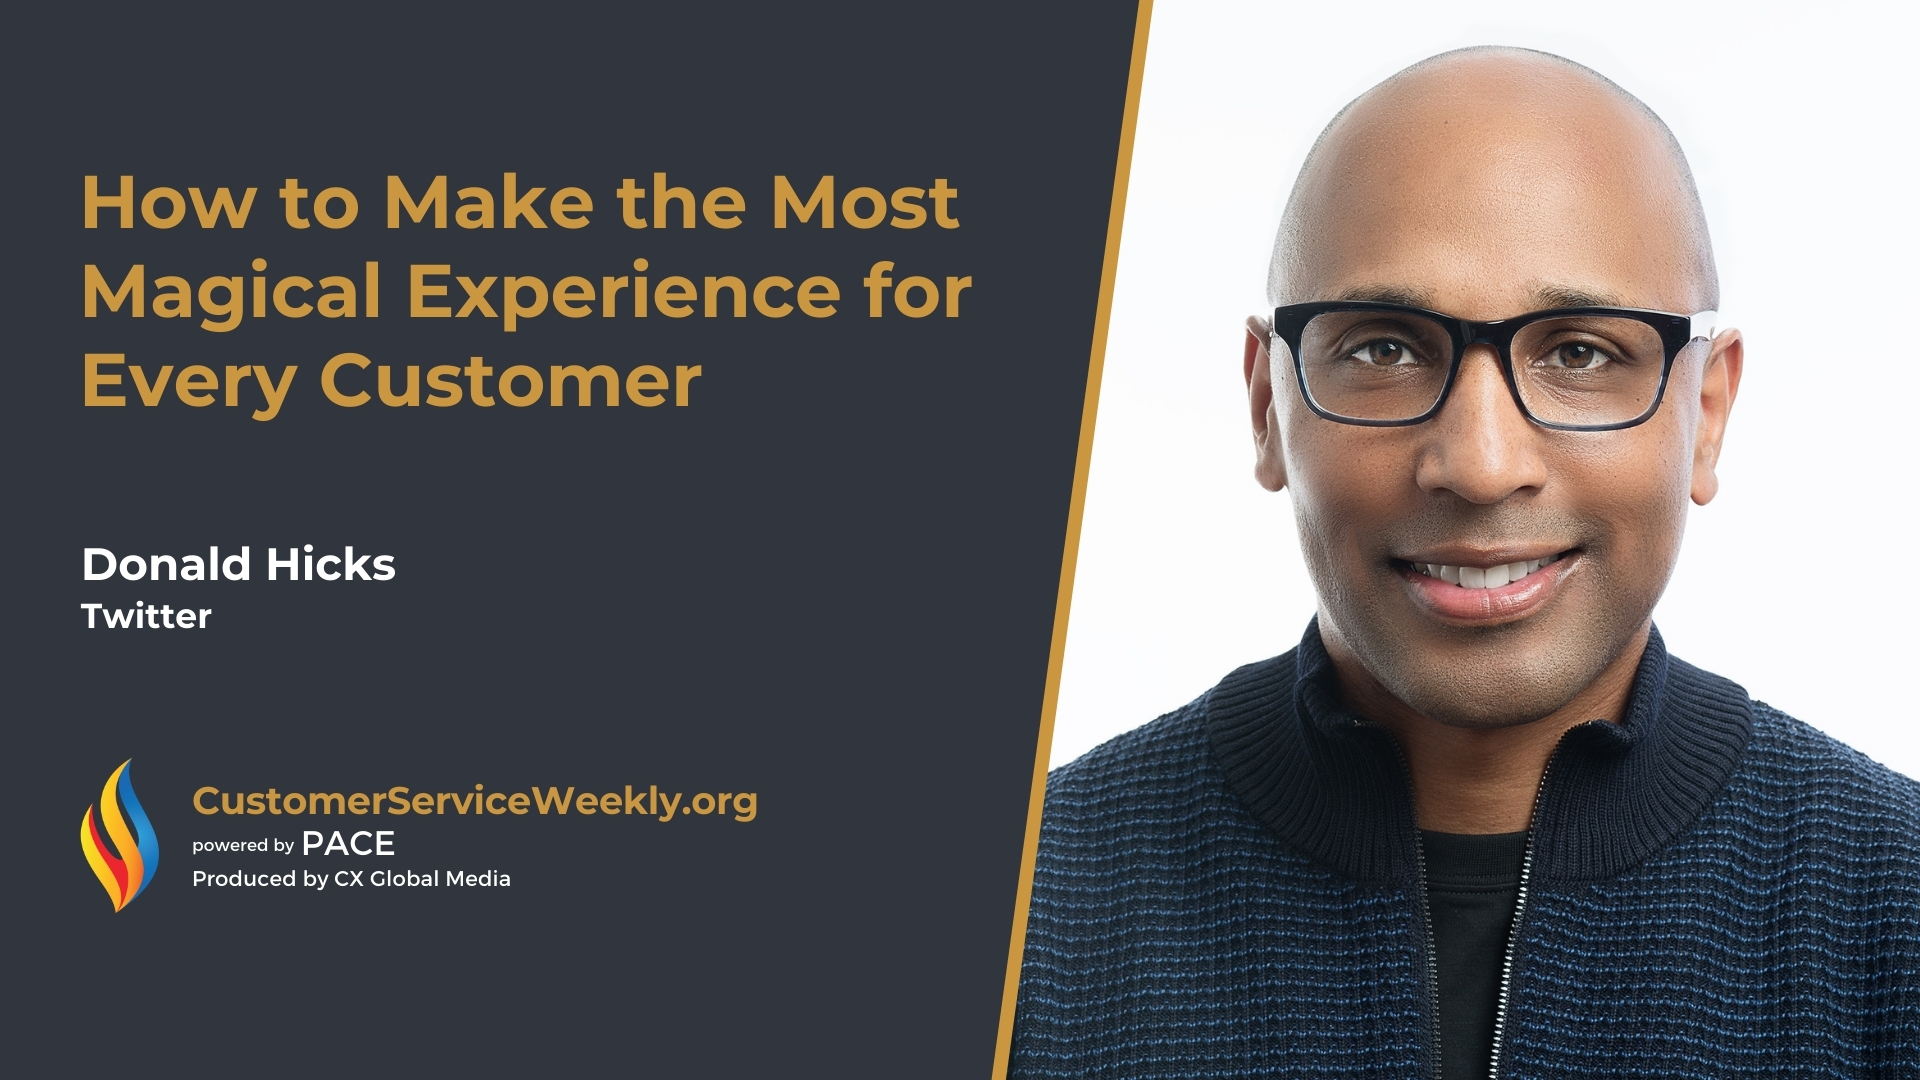 Donald Hicks – Twitter: How to Make the Most Magical Experience for Every Customer (Video)